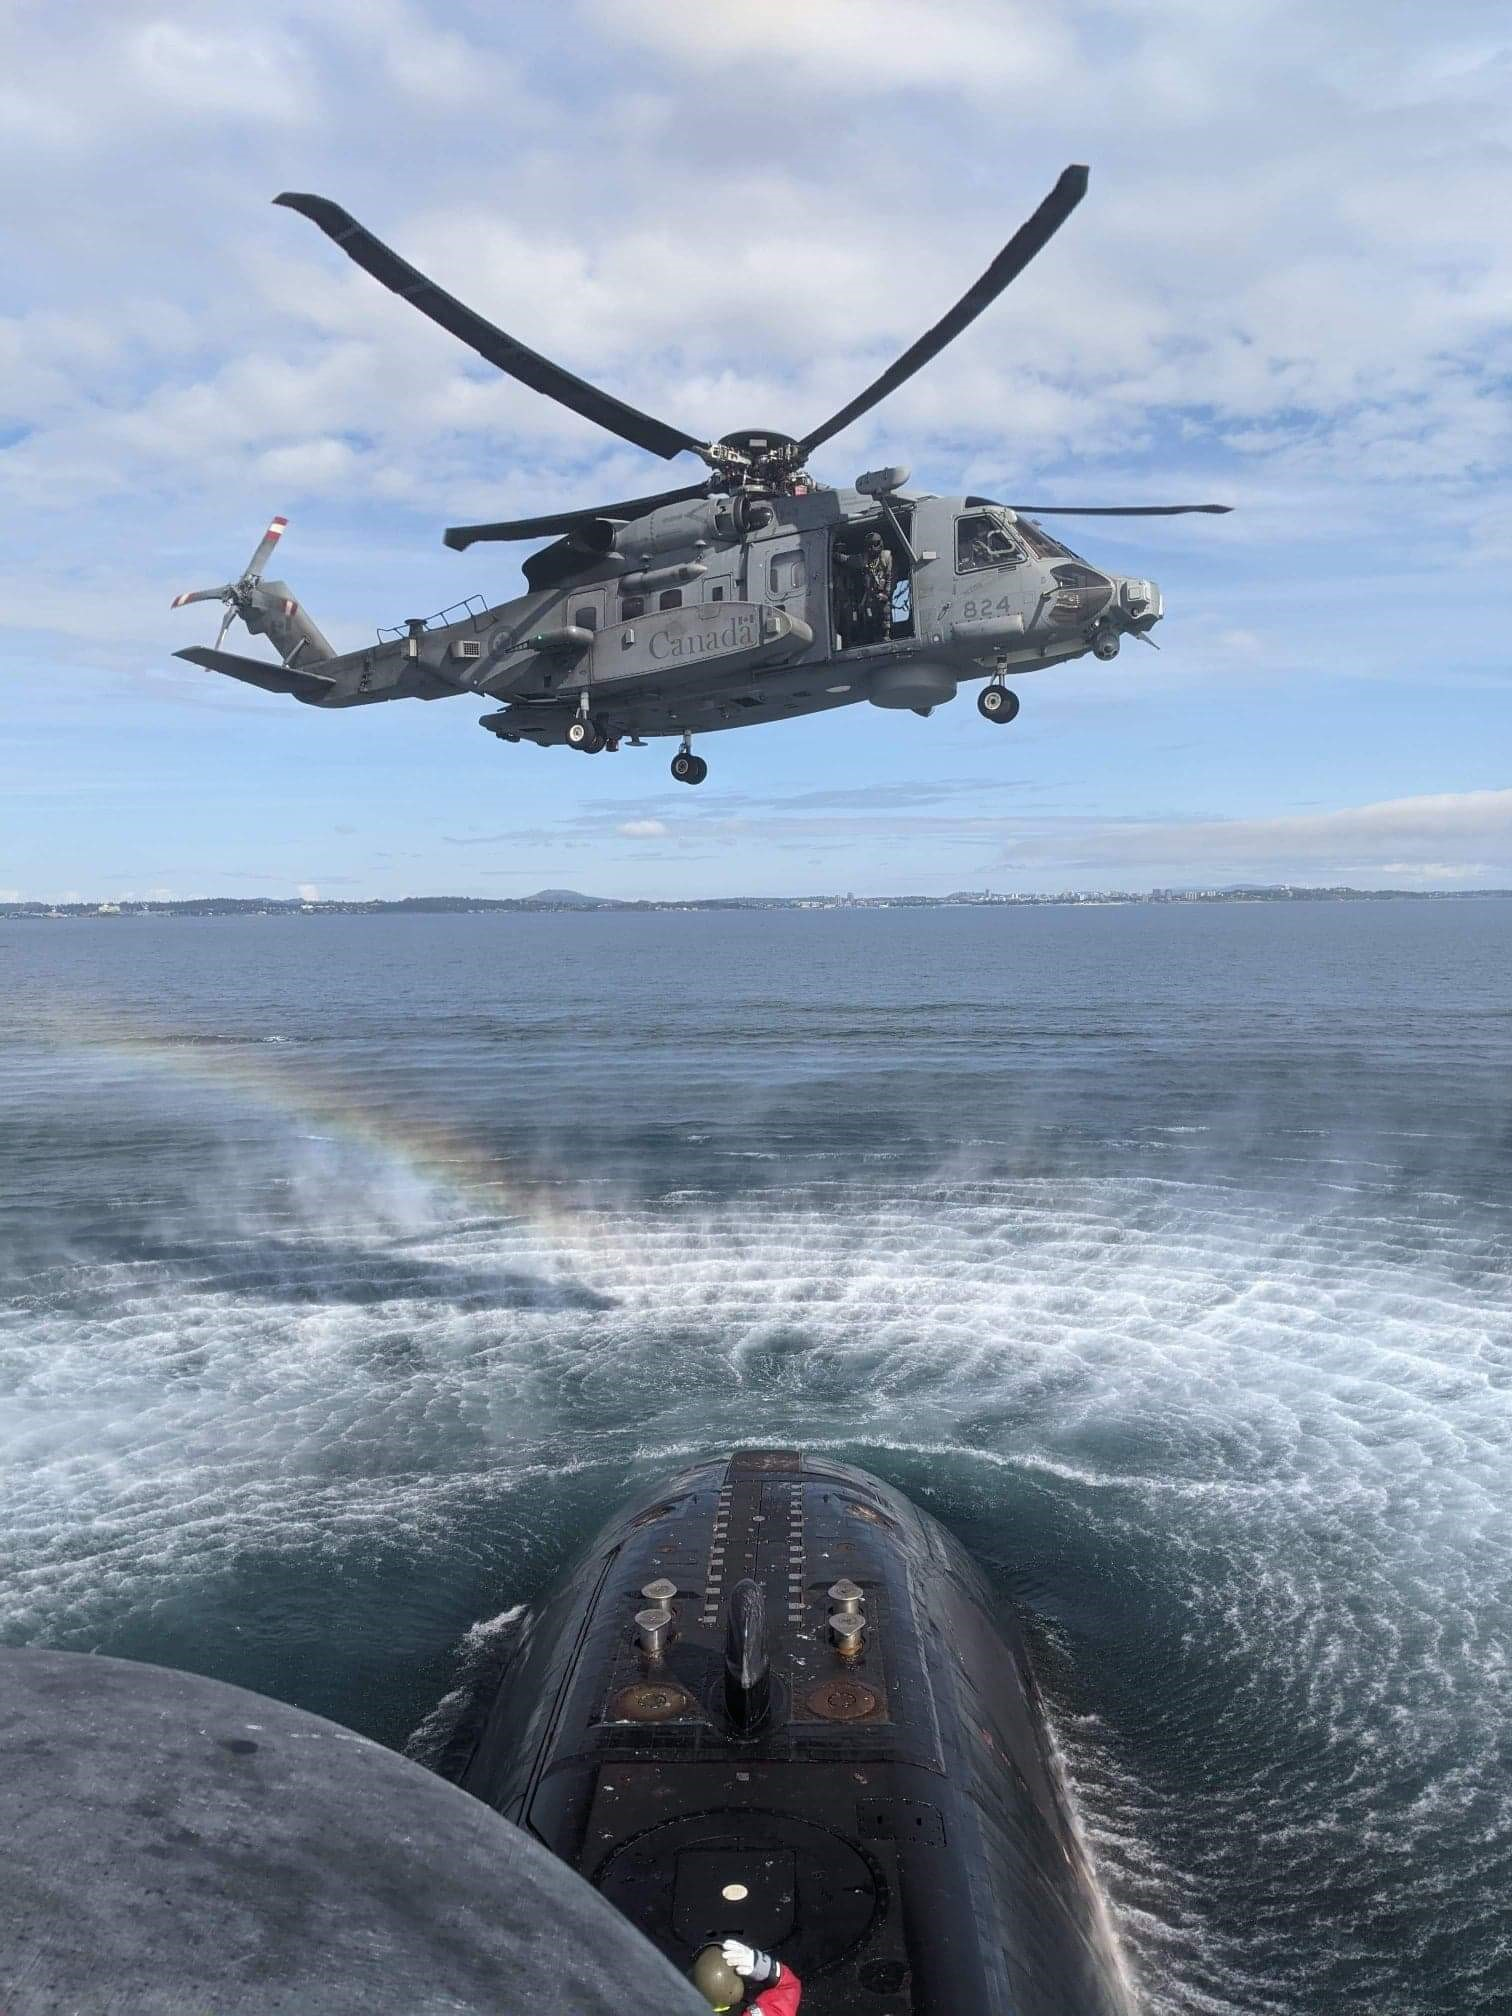 HMCS Victoria achieved another milestone as part of its ongoing sea trials when a CH-148 Cyclone helicopter hovered above to practice transferring equipment and personnel to the sub below – a first for a Victoria-class submarine and this new helicopter.